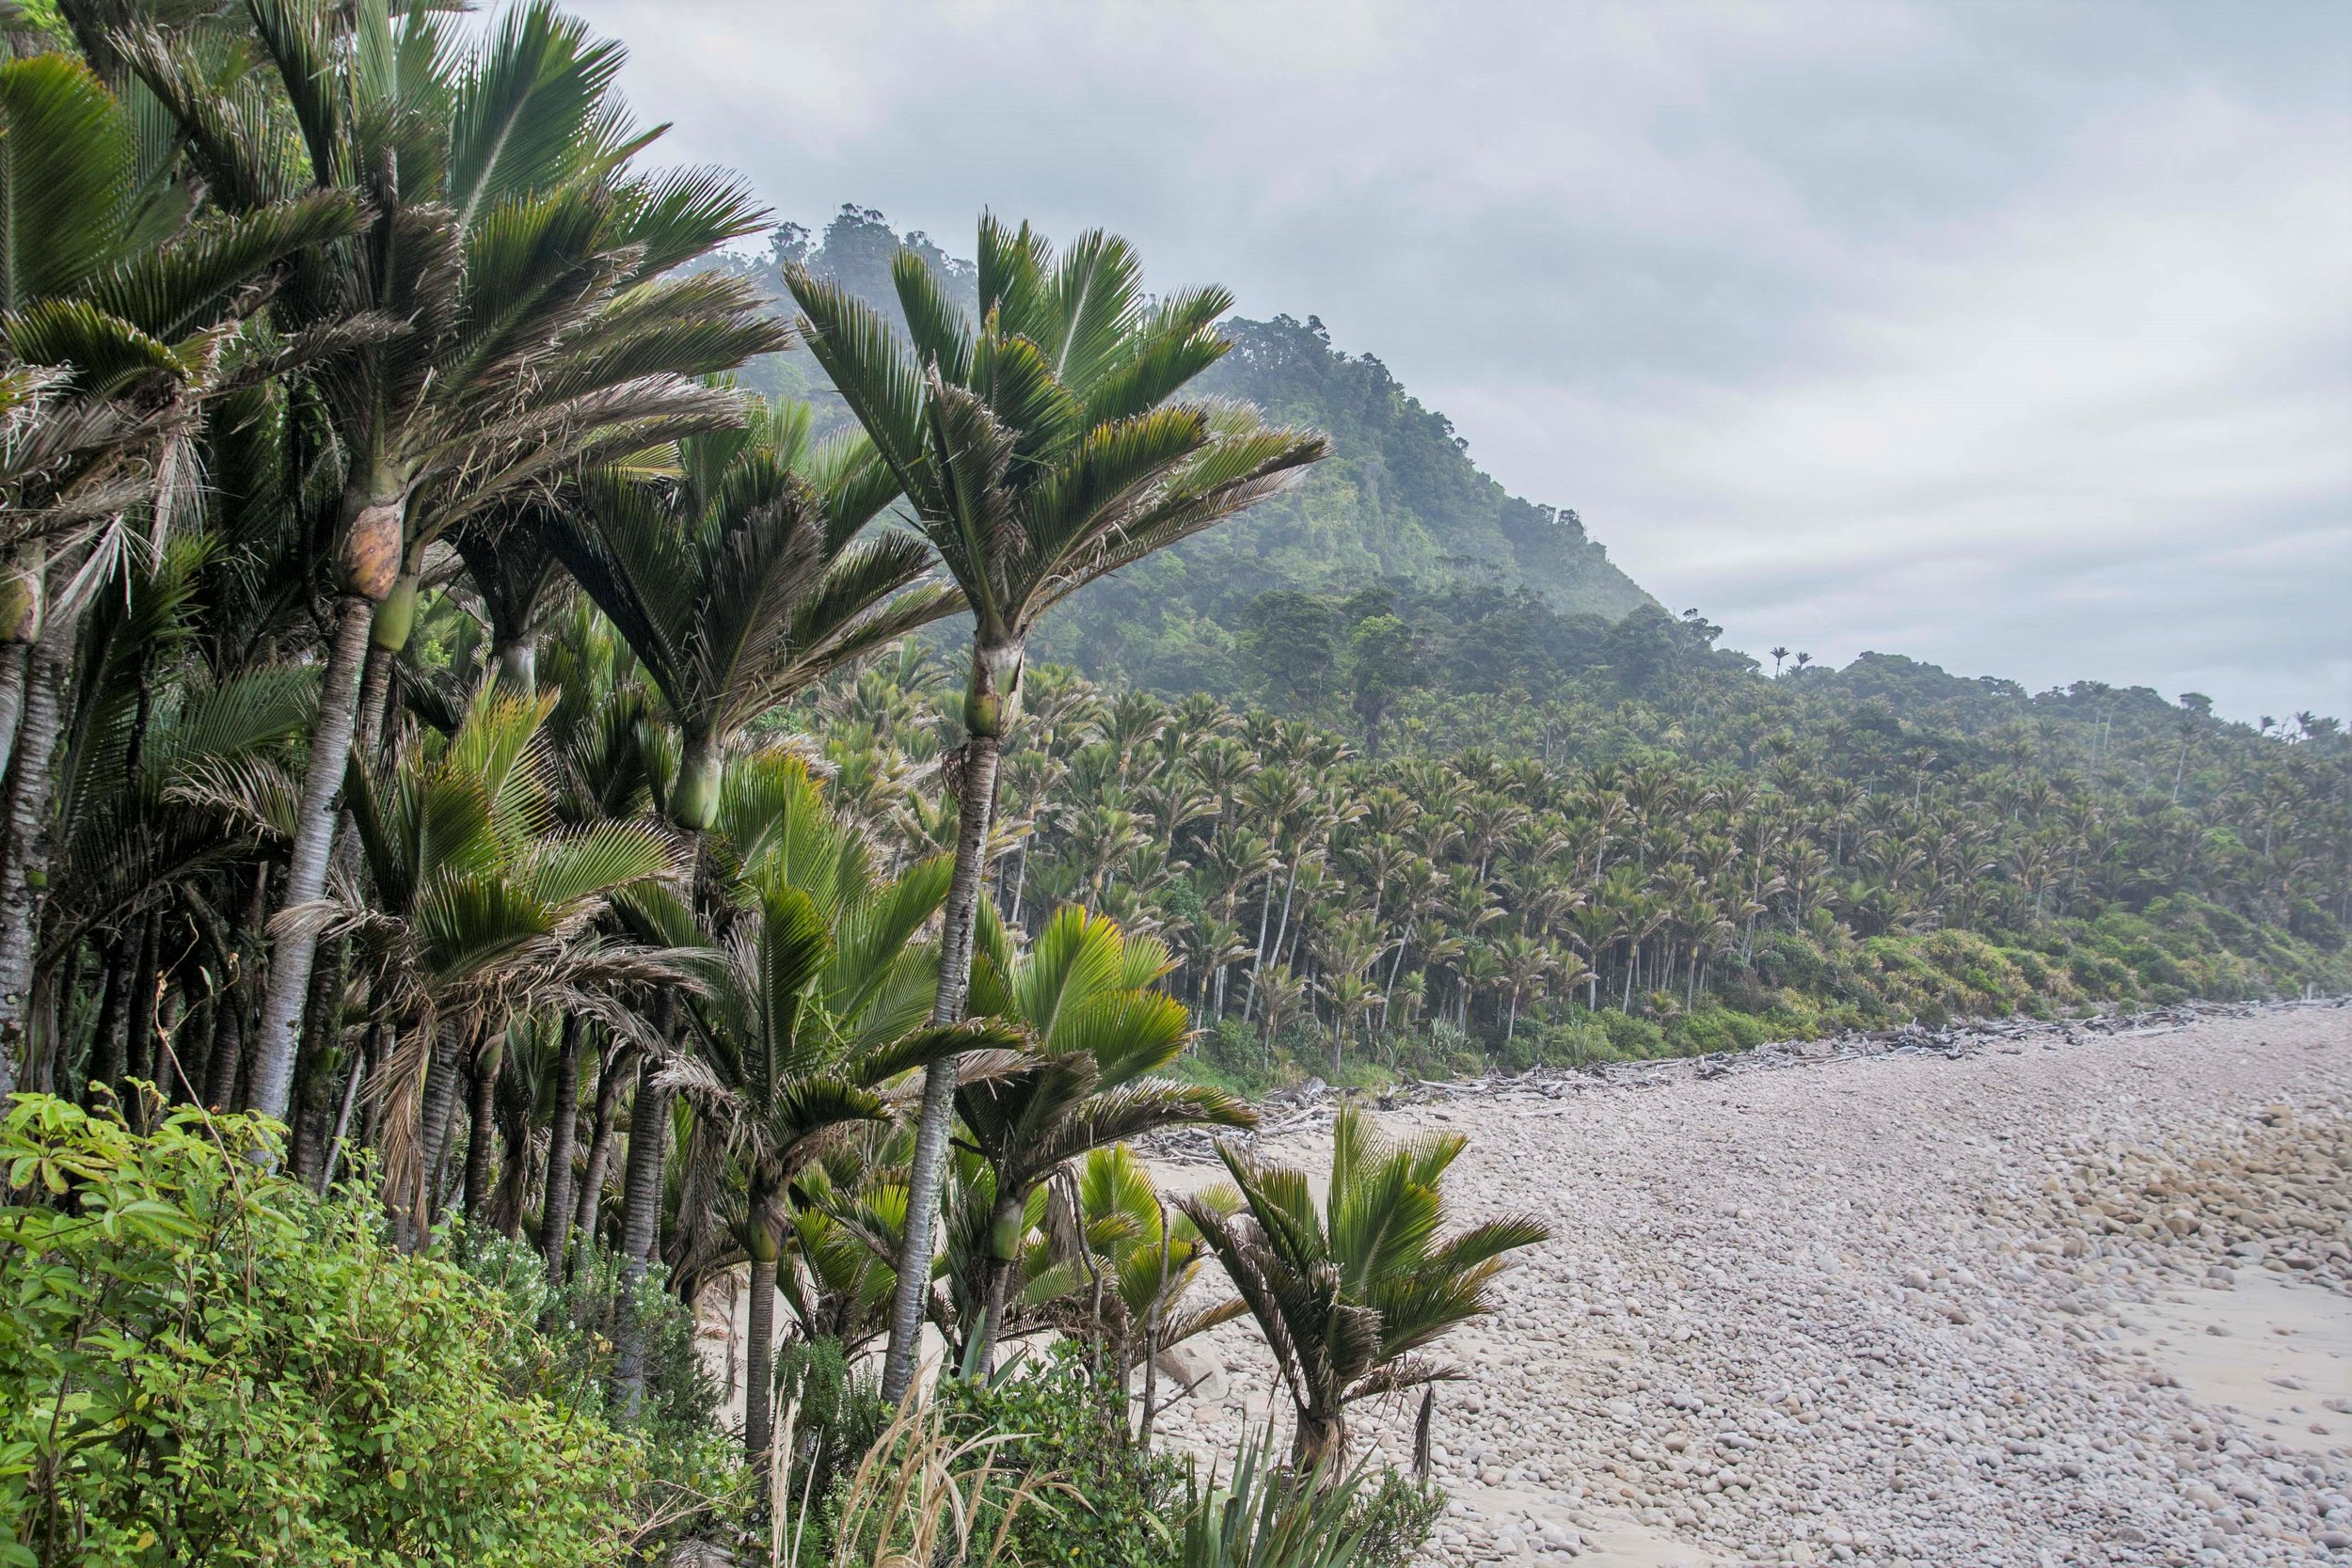 Nikau palms along the coast, a few hours into the trek.